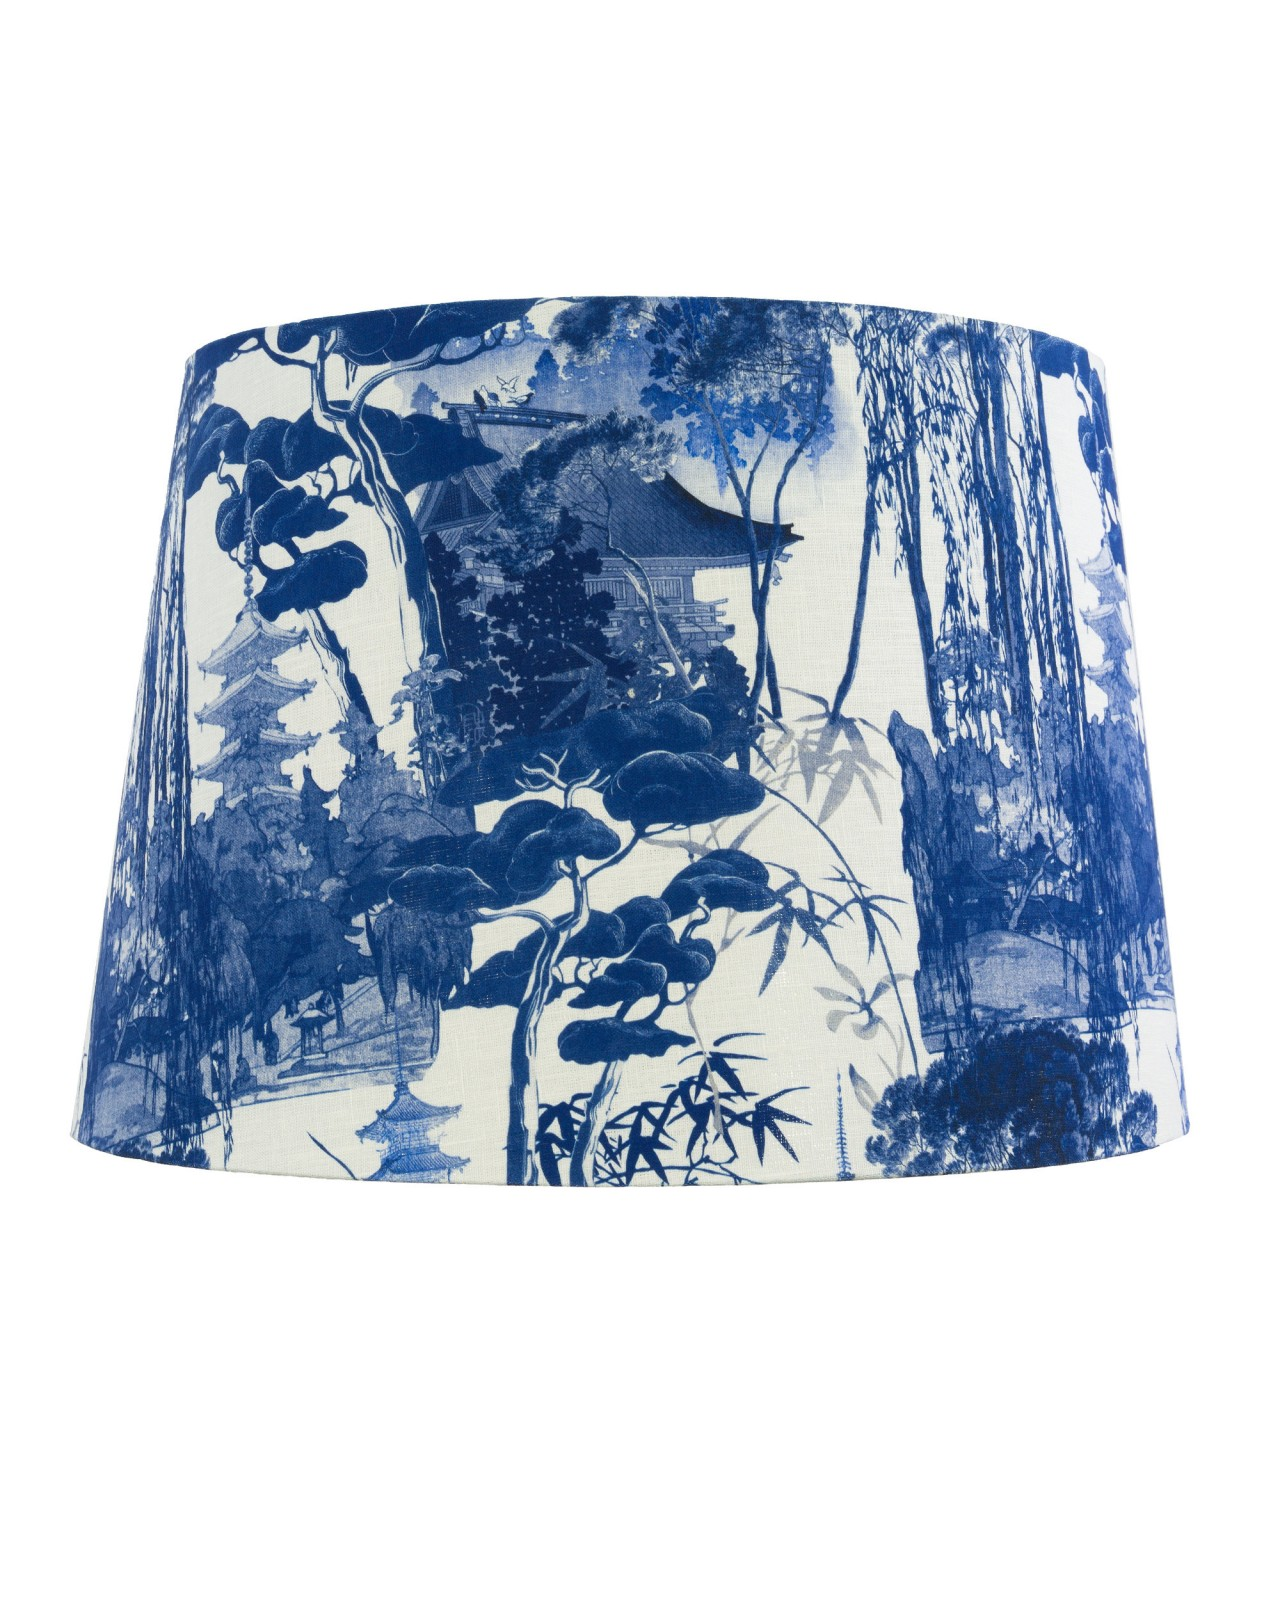 SAIGON Lampshade